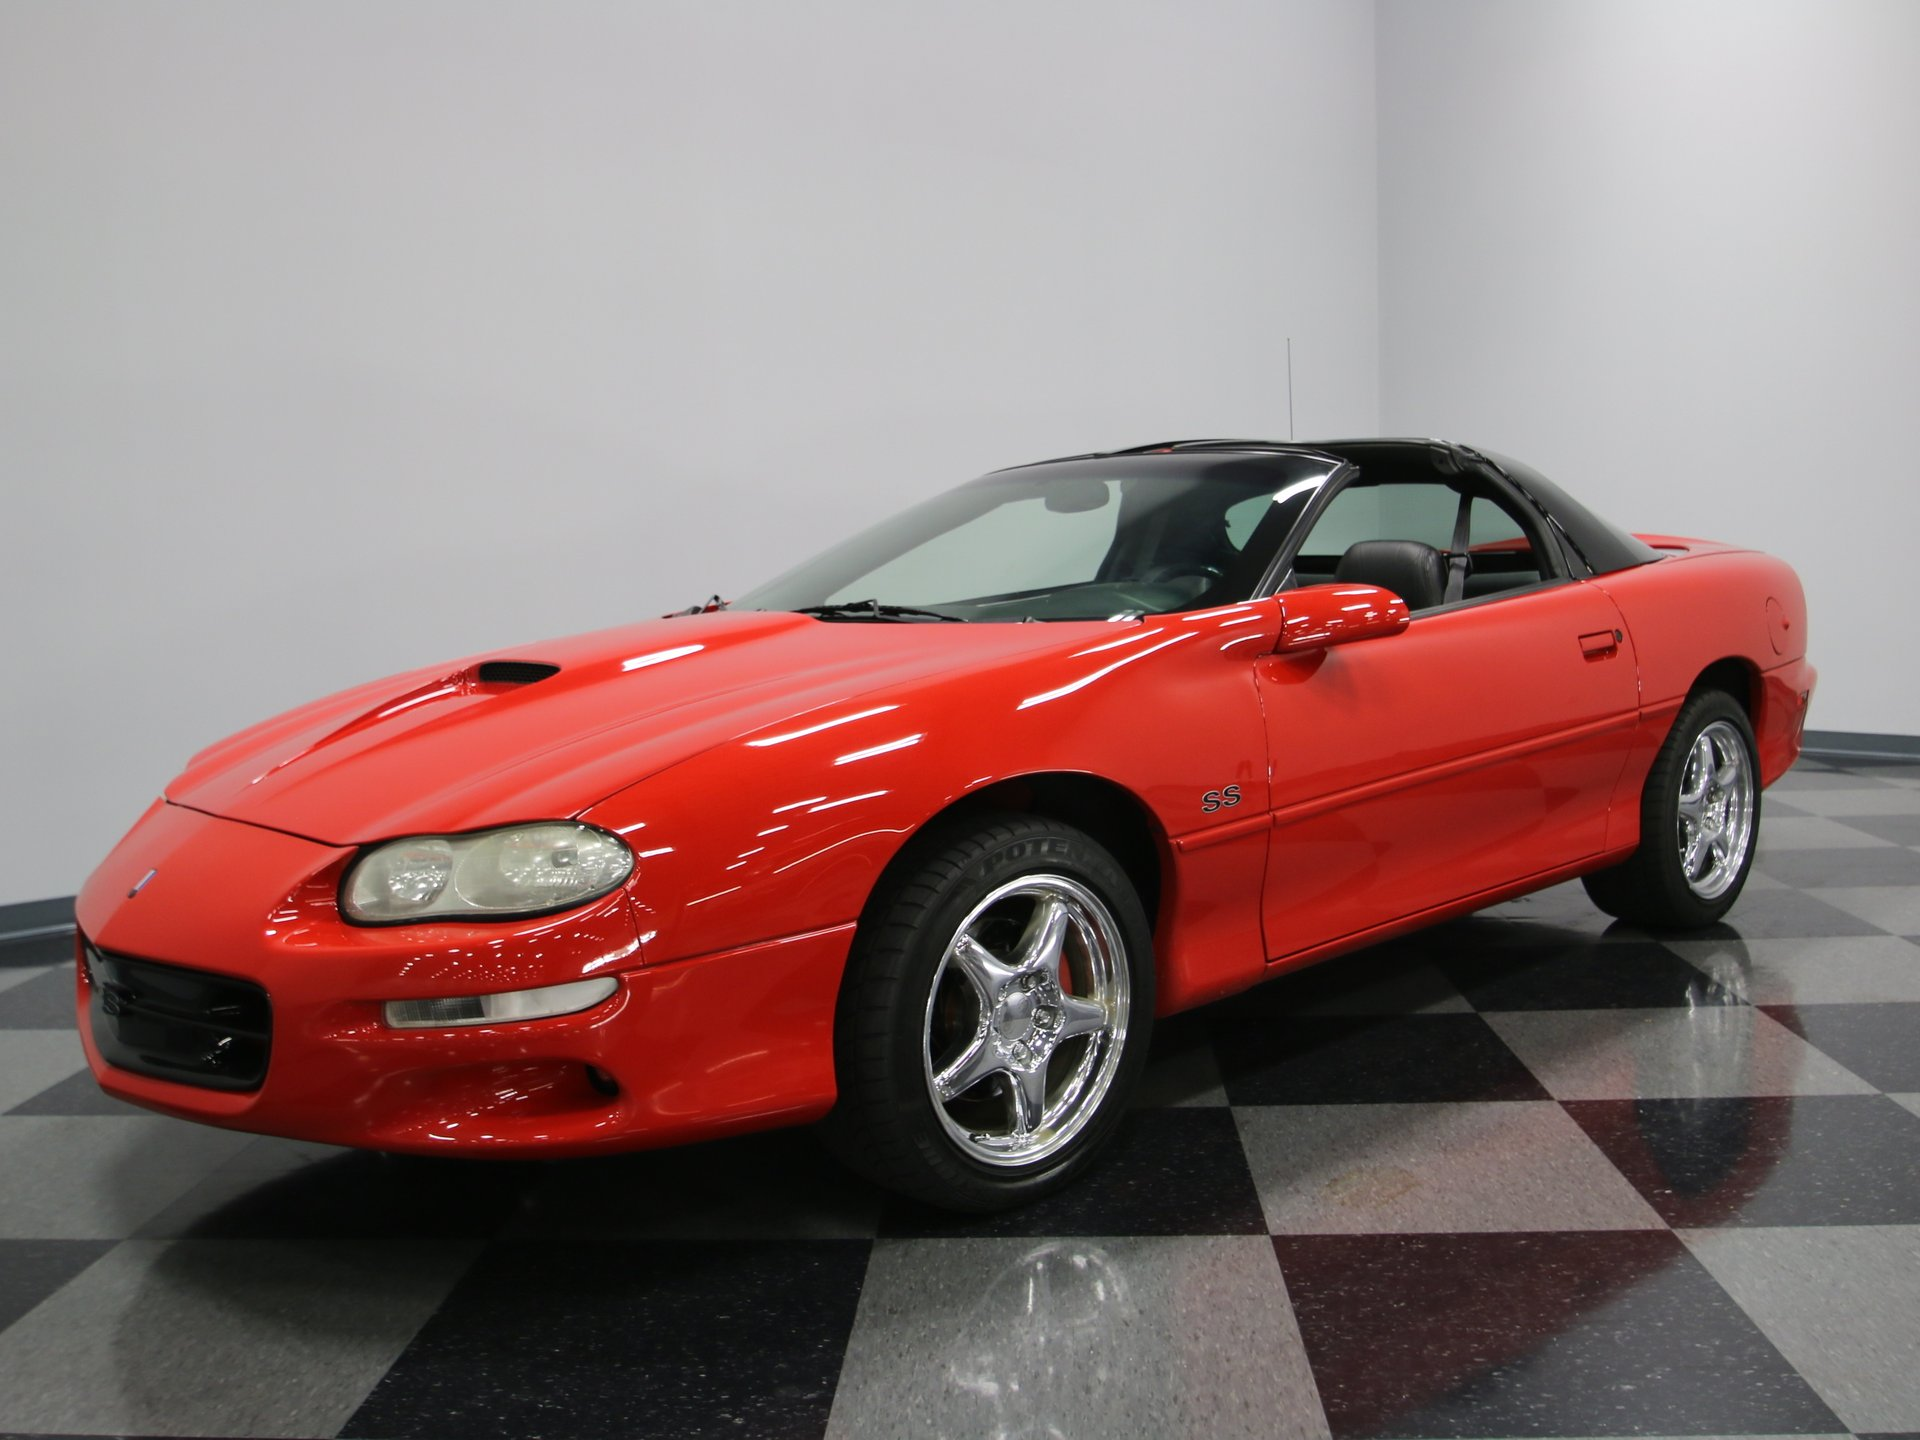 2001 chevrolet camaro streetside classics the nation s trusted classic car consignment dealer 2001 chevrolet camaro streetside